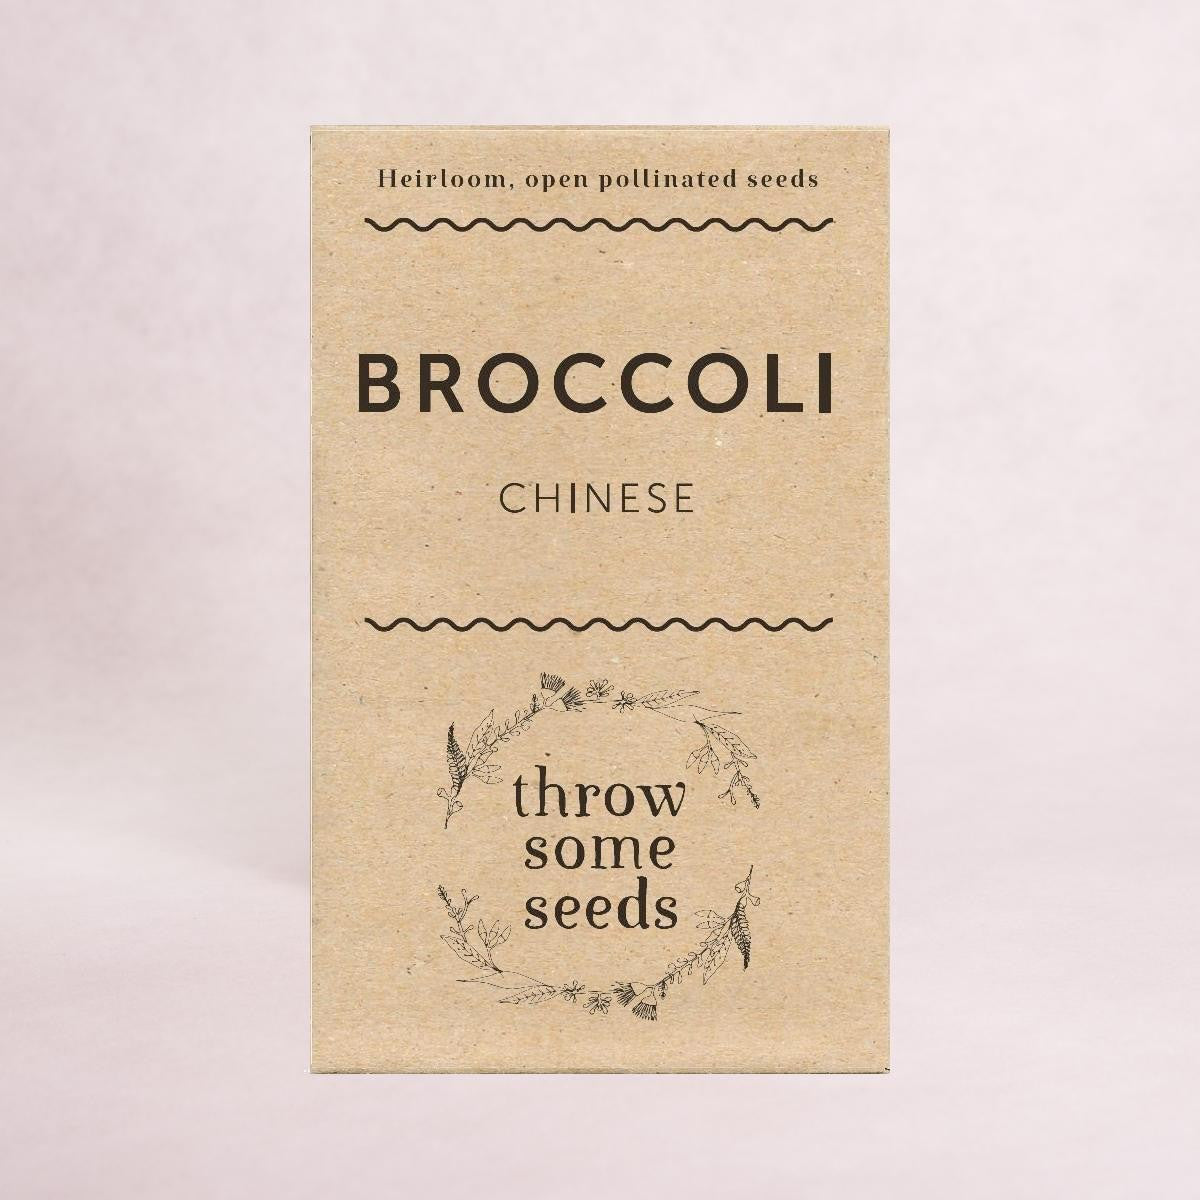 Chinese Broccoli (Hong Kong) Seeds - Seeds - Throw Some Seeds - Australian gardening gifts and eco products online!